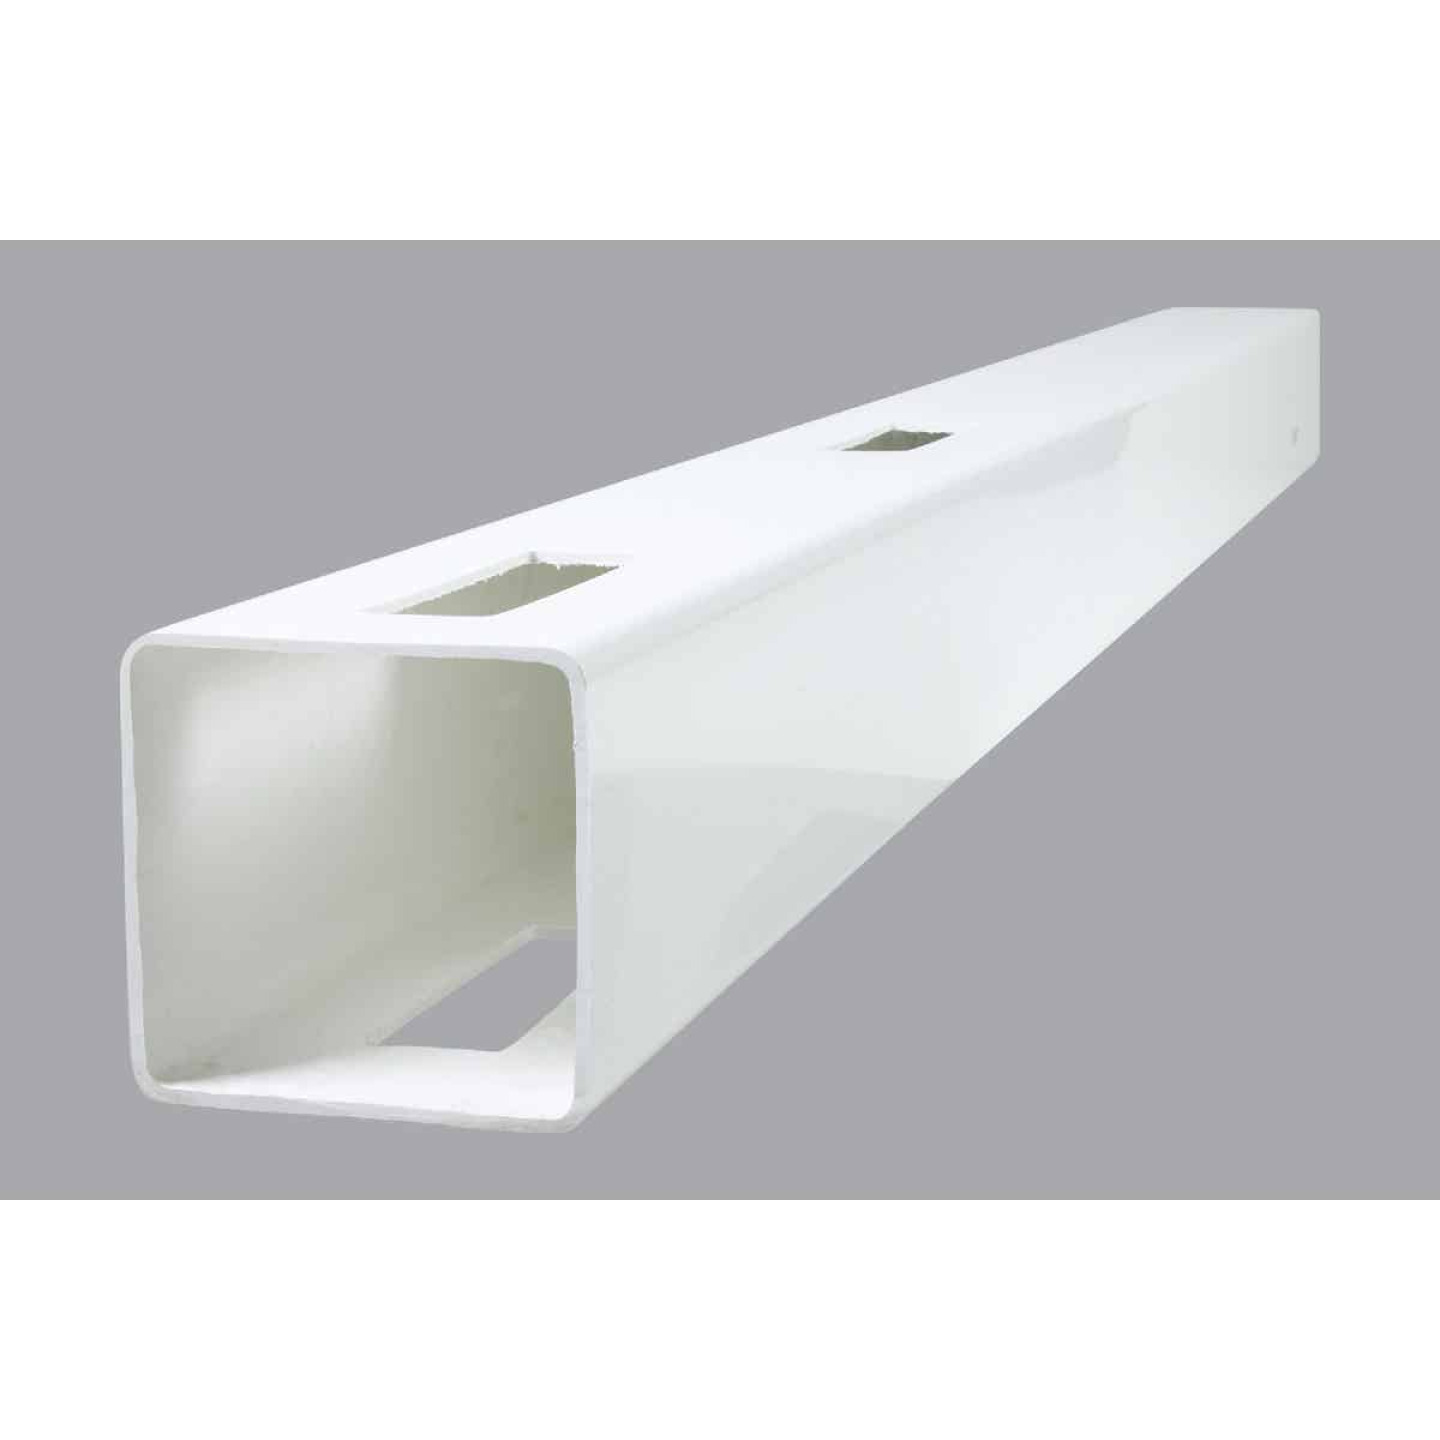 Outdoor Essentials 5 In. x 5 In. x 60 In. White Line 2-Rail Fence Vinyl Post Image 1